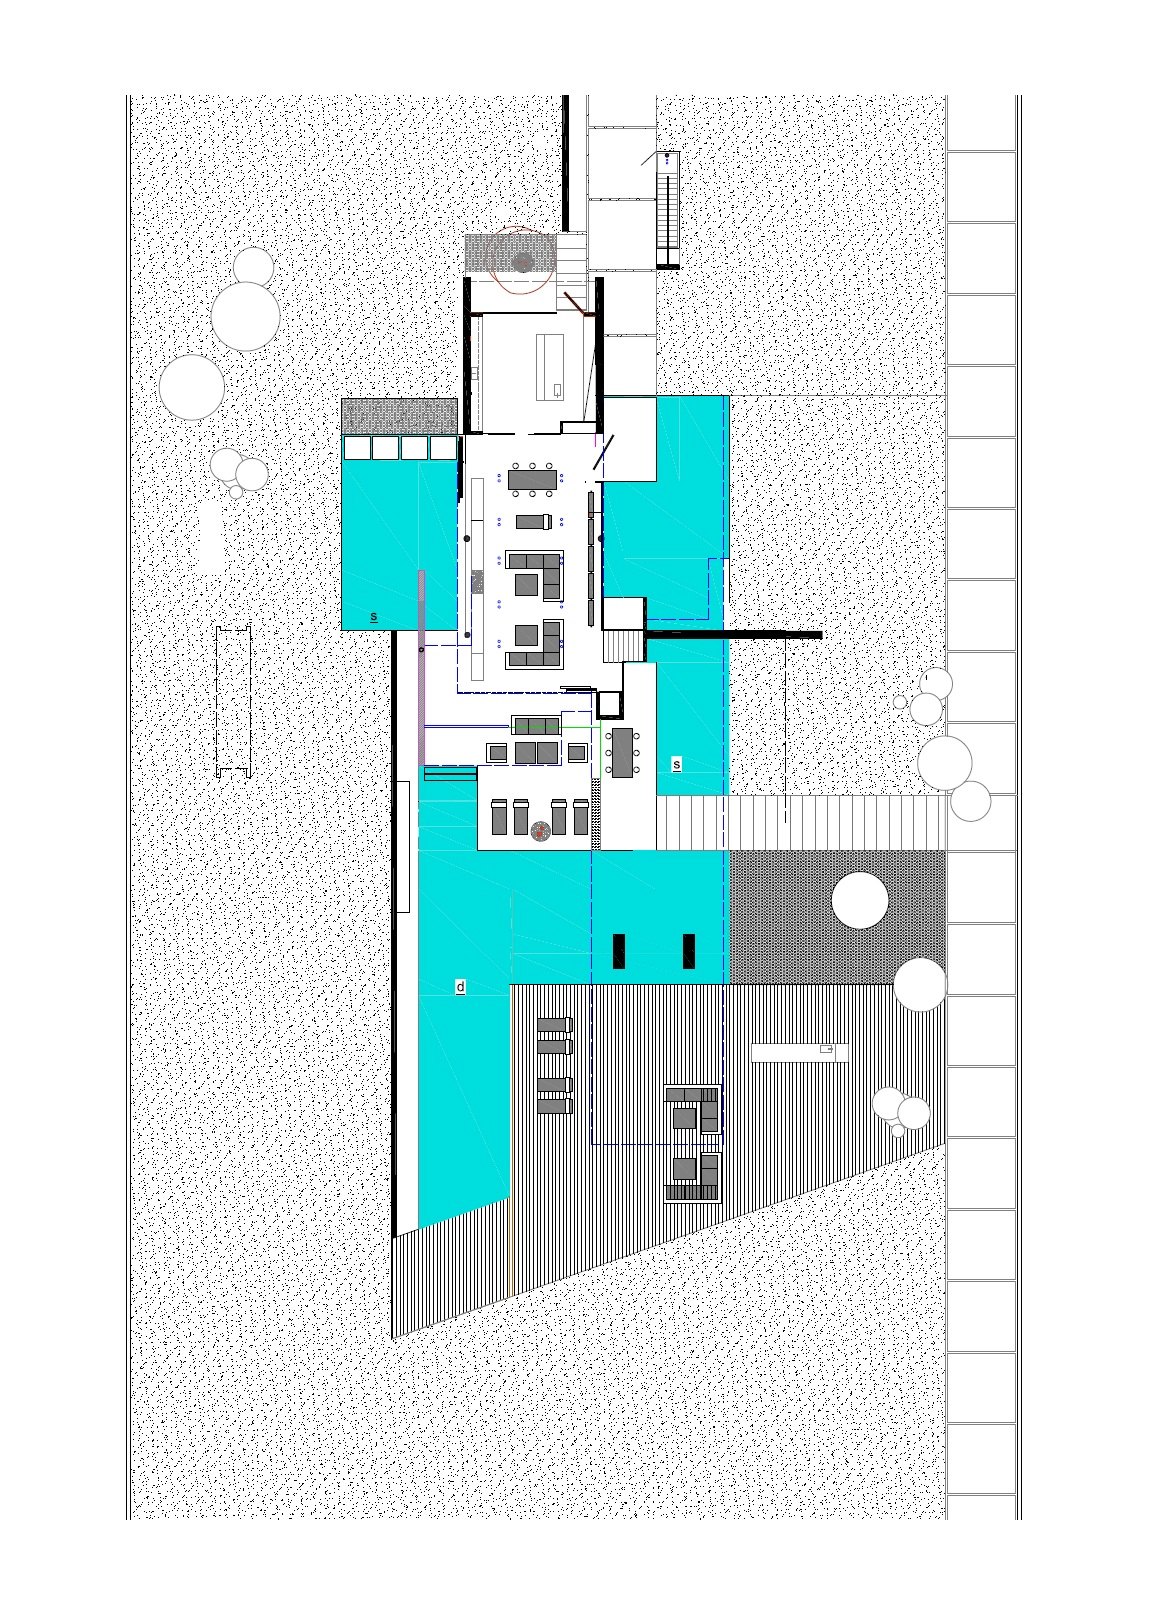 Ground floor plan of an Impressive Ultra Modern House in Athens